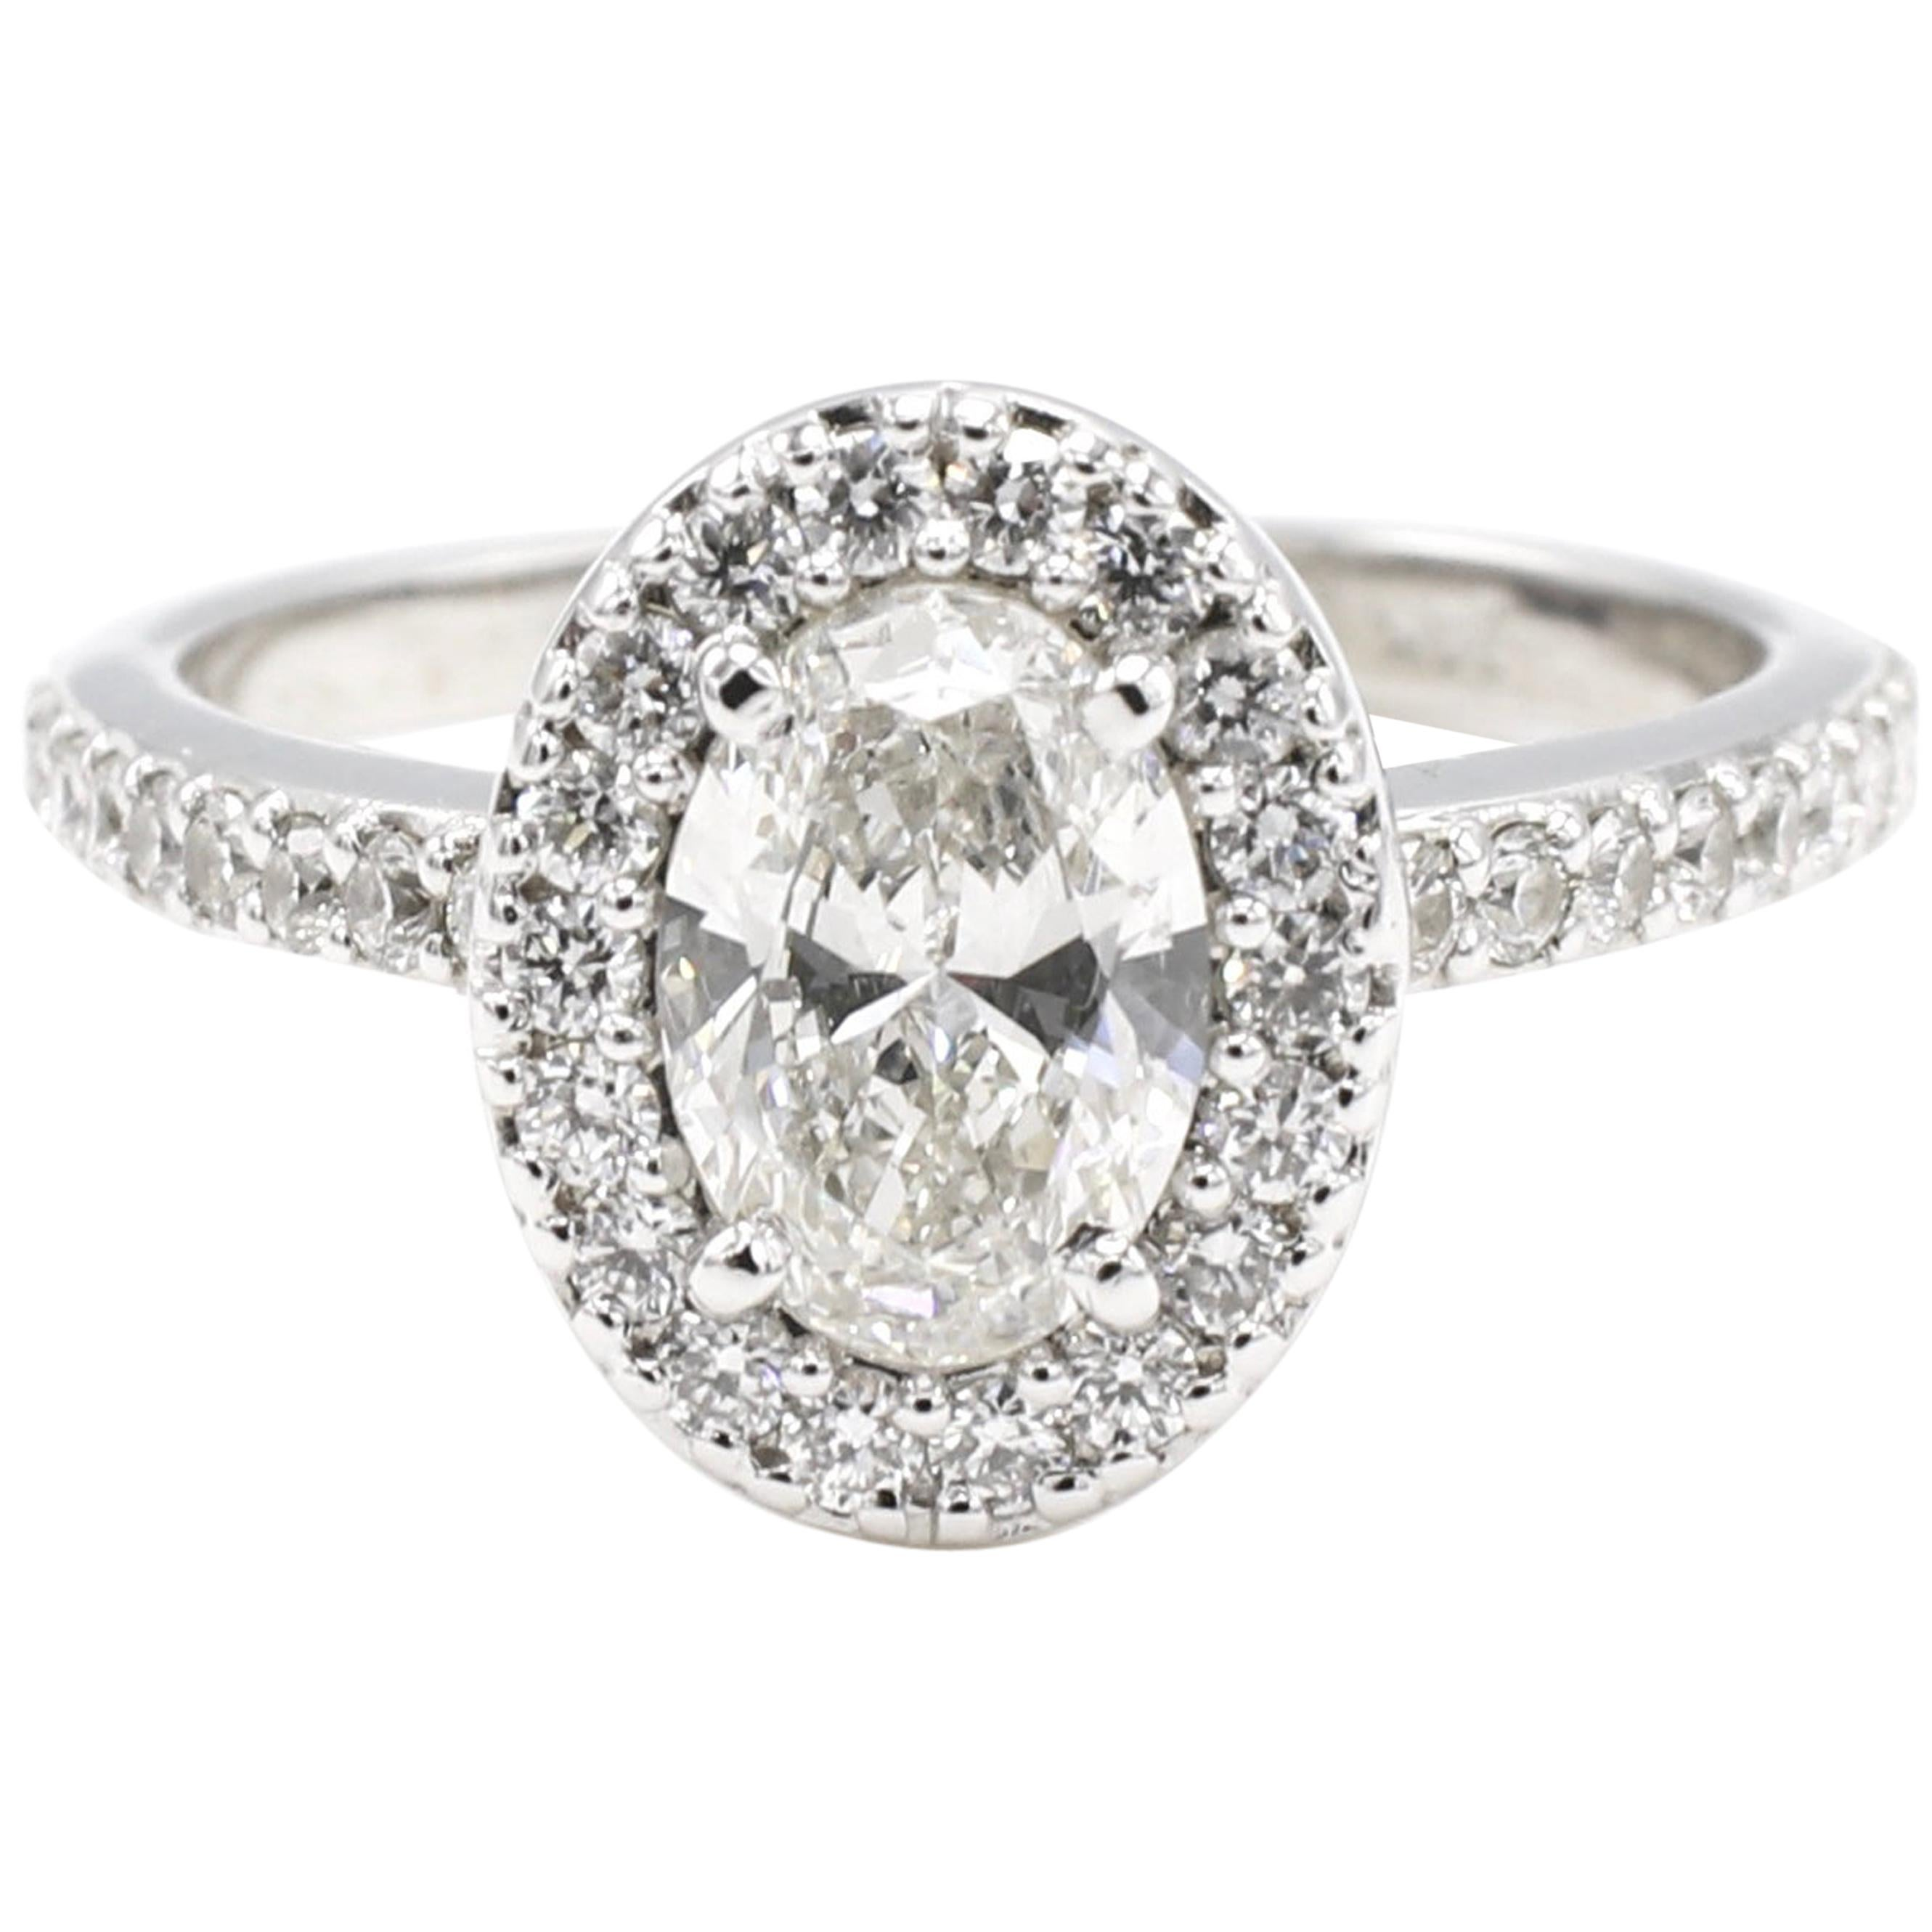 GIA Certified 0.73 Carat Oval Diamond Halo Engagement Ring